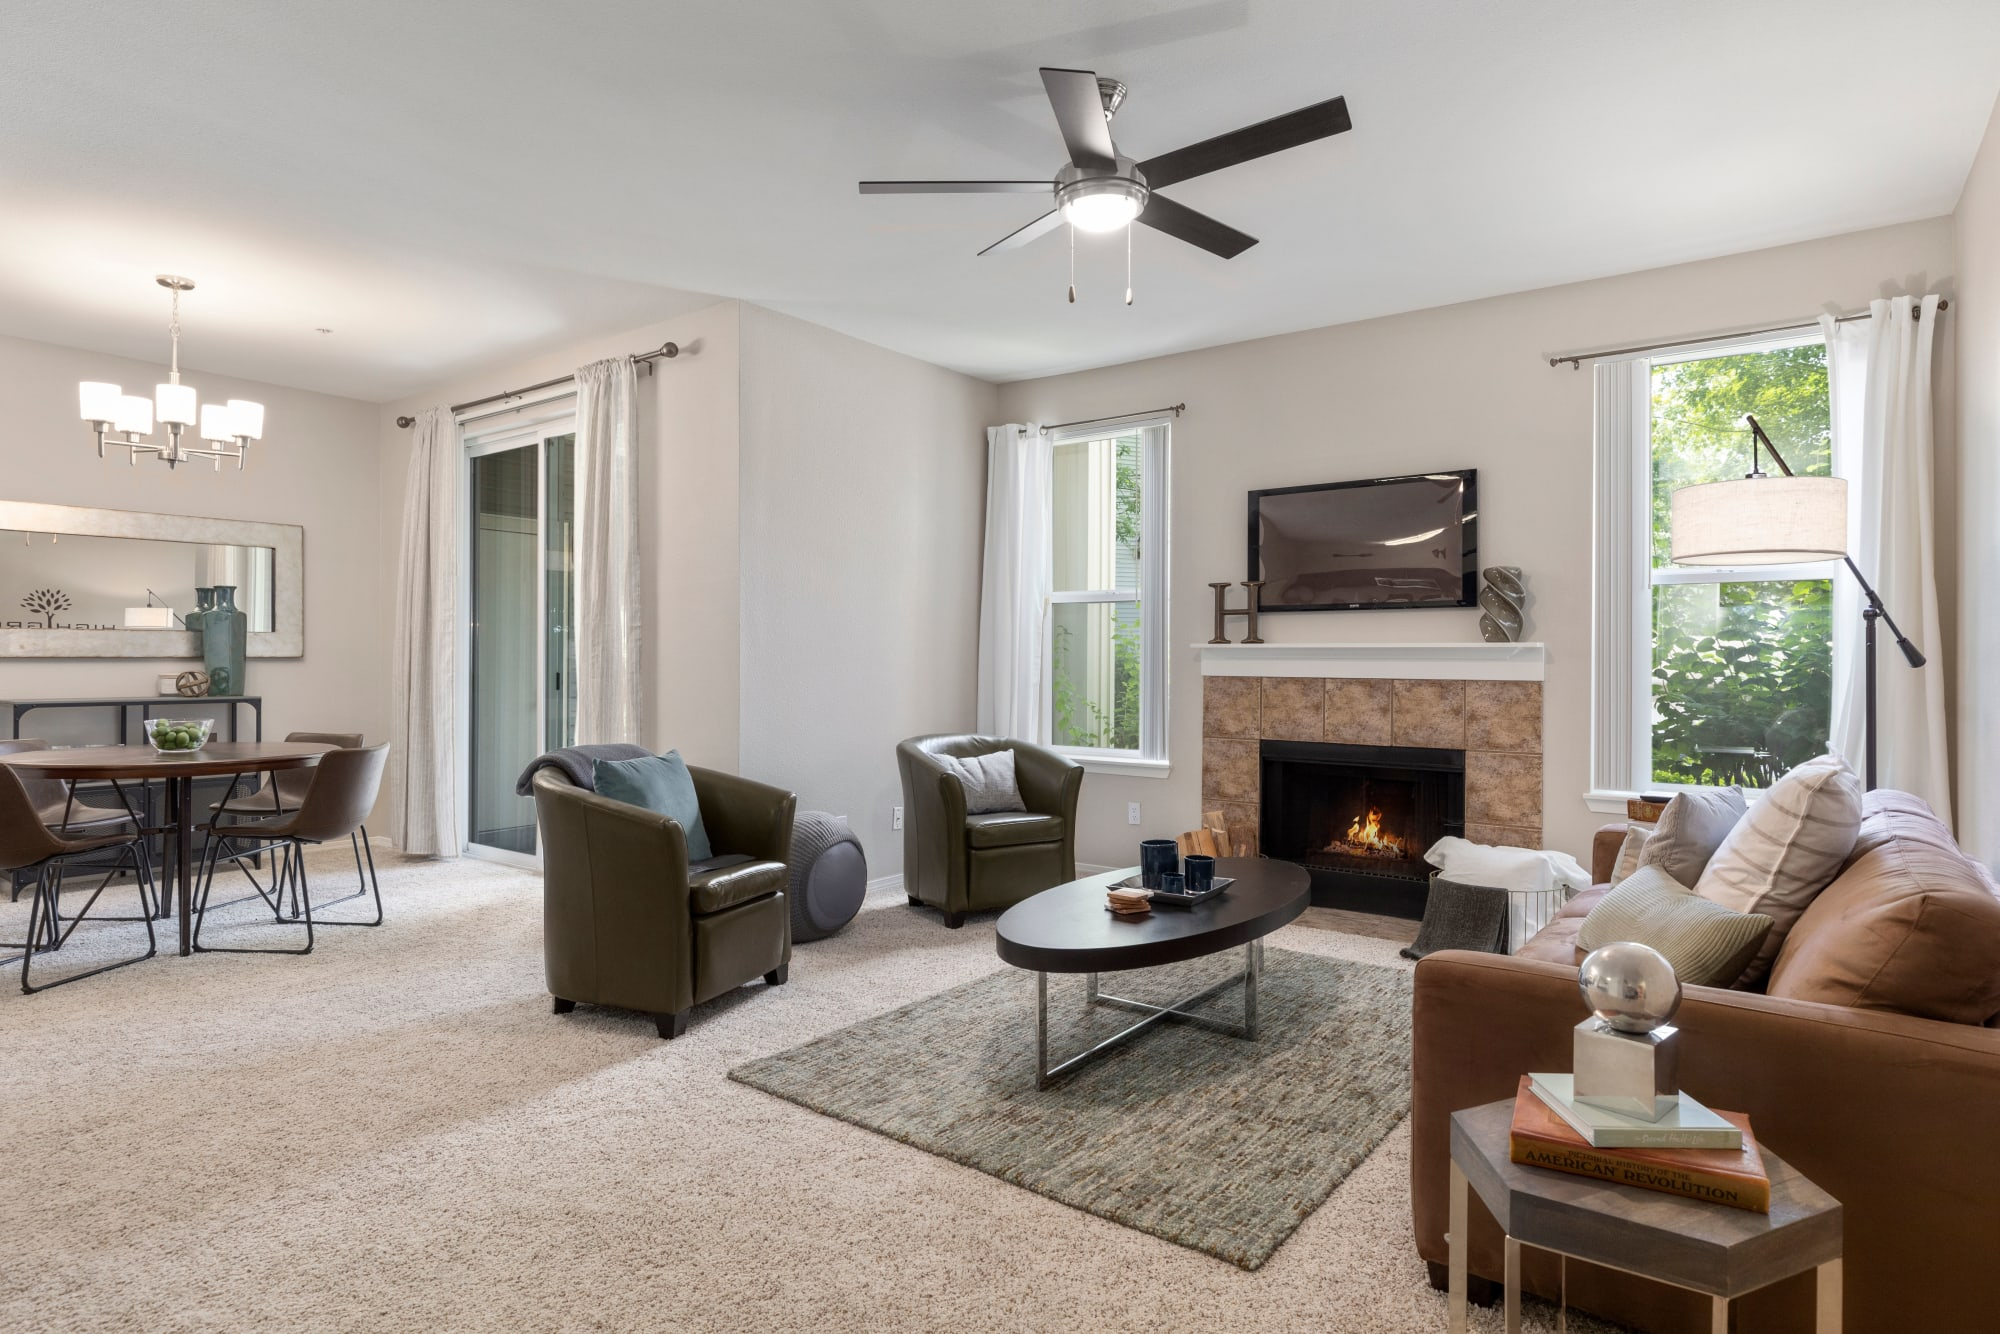 Living Room with fireplace and view of dining room at HighGrove Apartments in Everett, WA